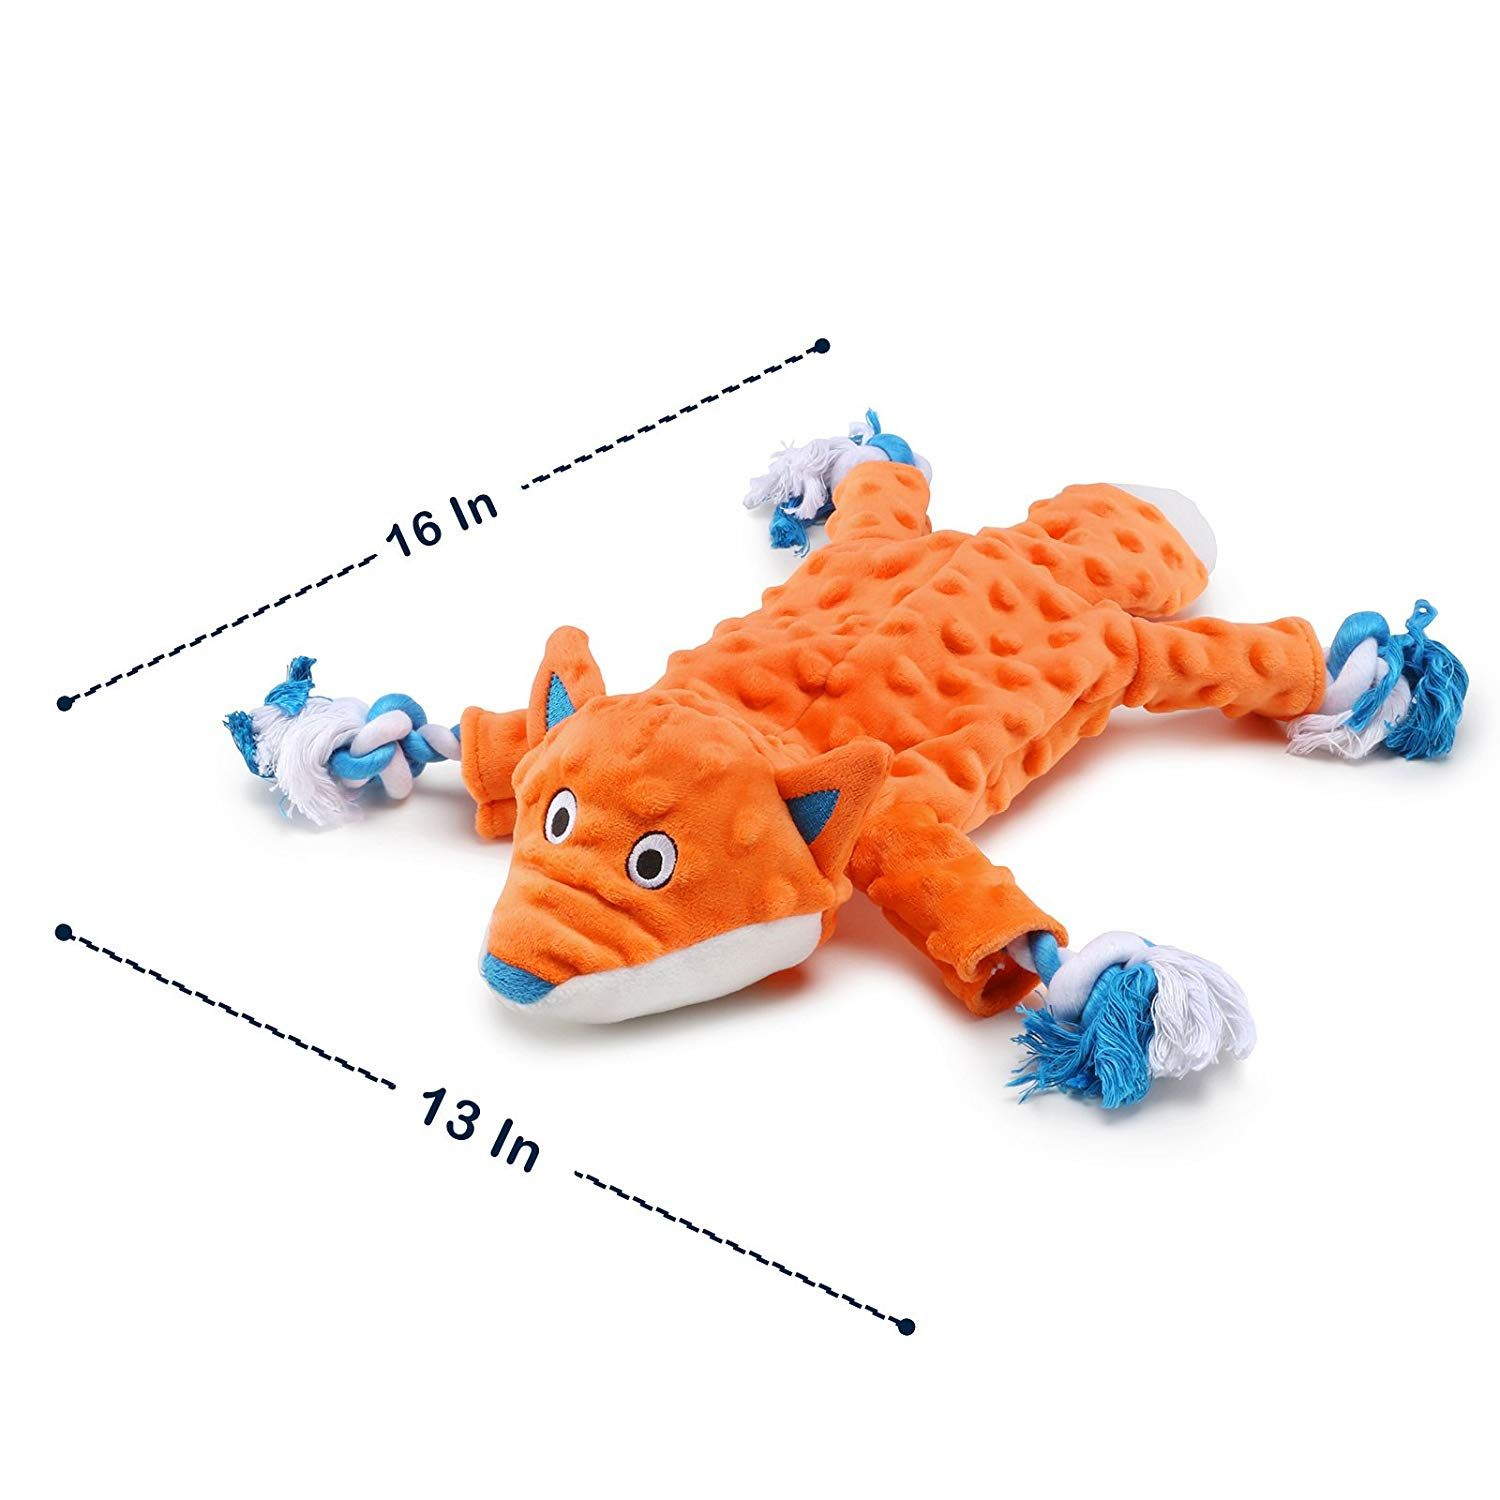 Plush Dog Toy Fox Pattern Stuffingless Dog Rope Toy With 2